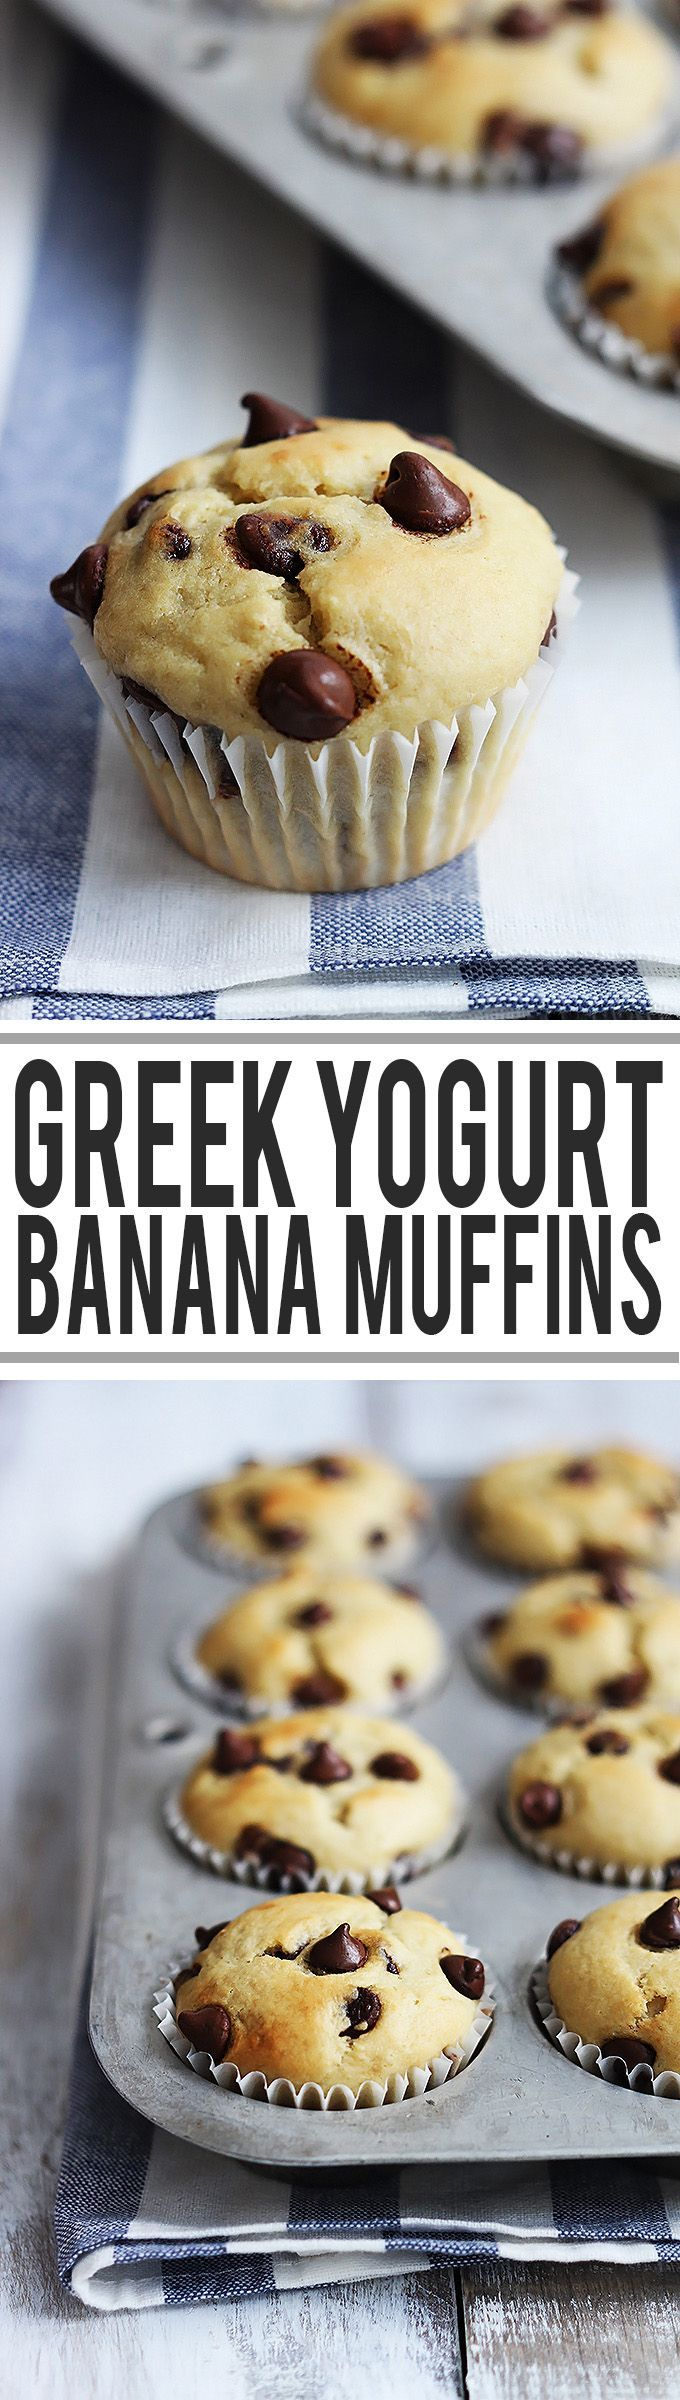 Easy and fluffy, super-moist banana greek yogurt muffins with a boost of breakfast-worthy protein!